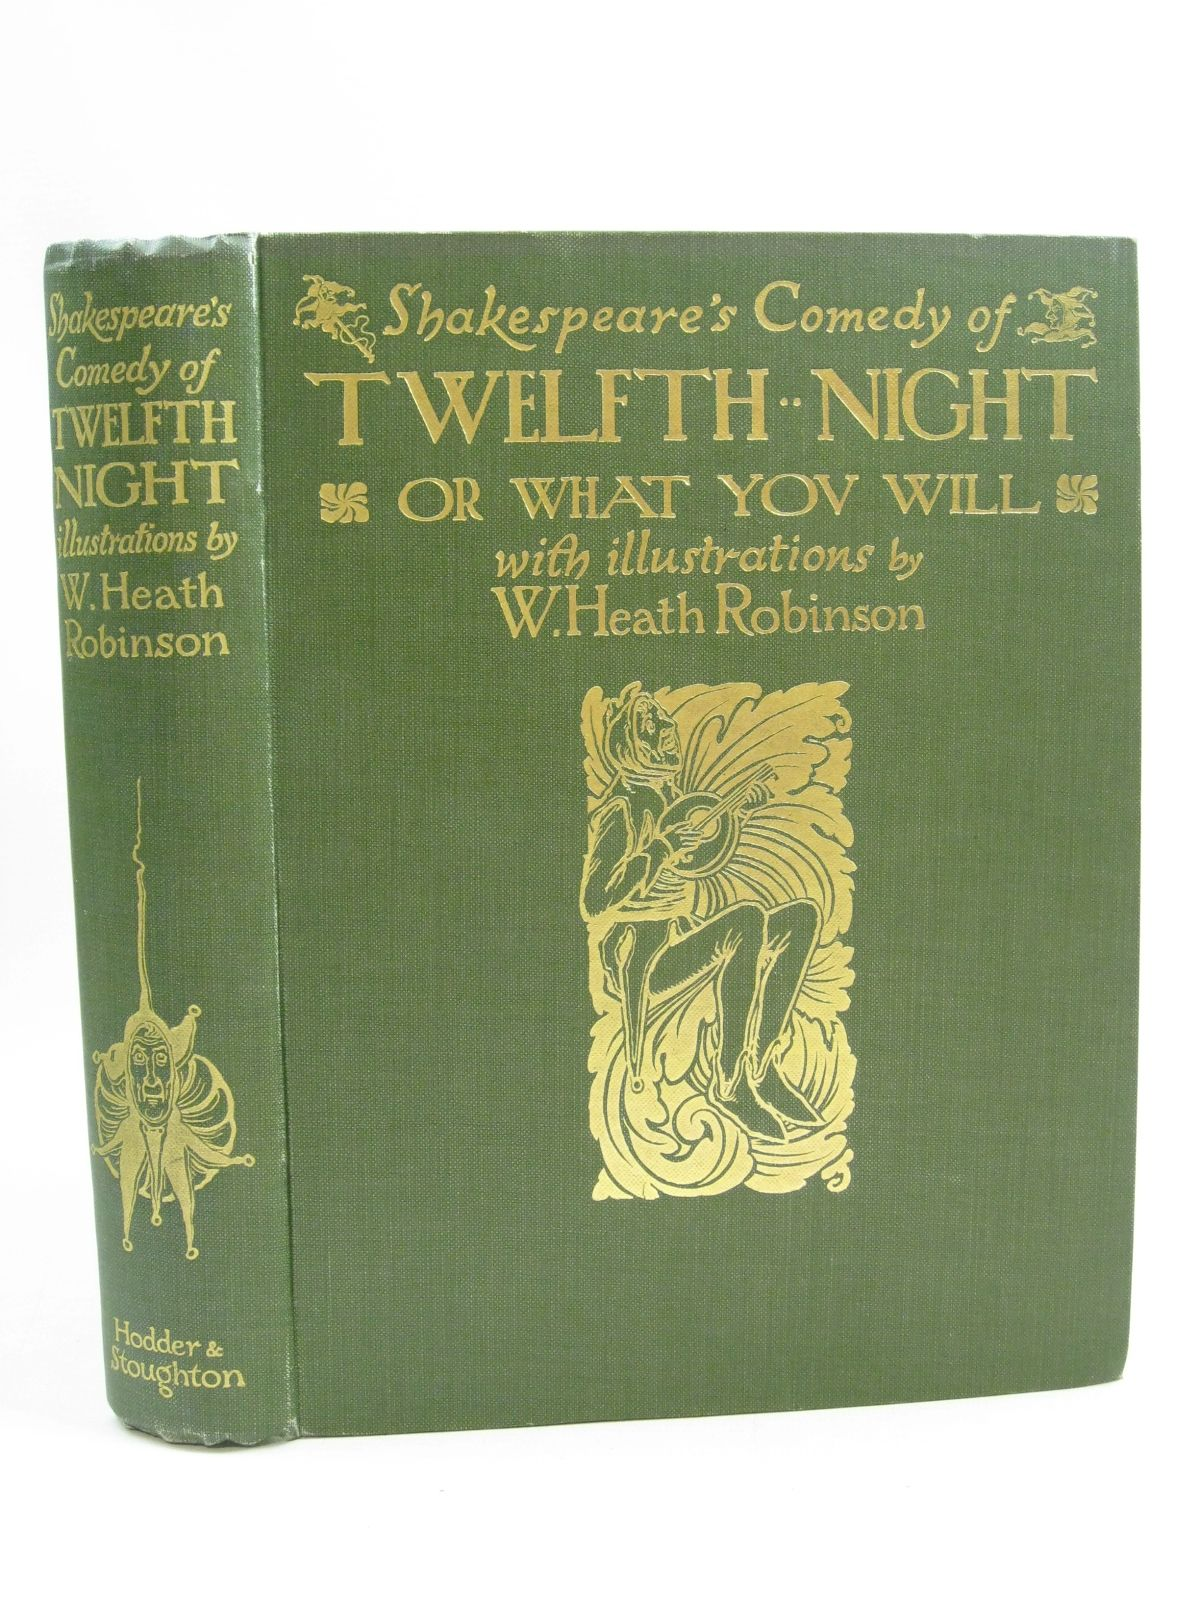 thesis of twelfth night Twelfth night is a perfect blend of romance and comedy by william shakespeare orsino, the duke of lllyria, is in love with the countess olivia.